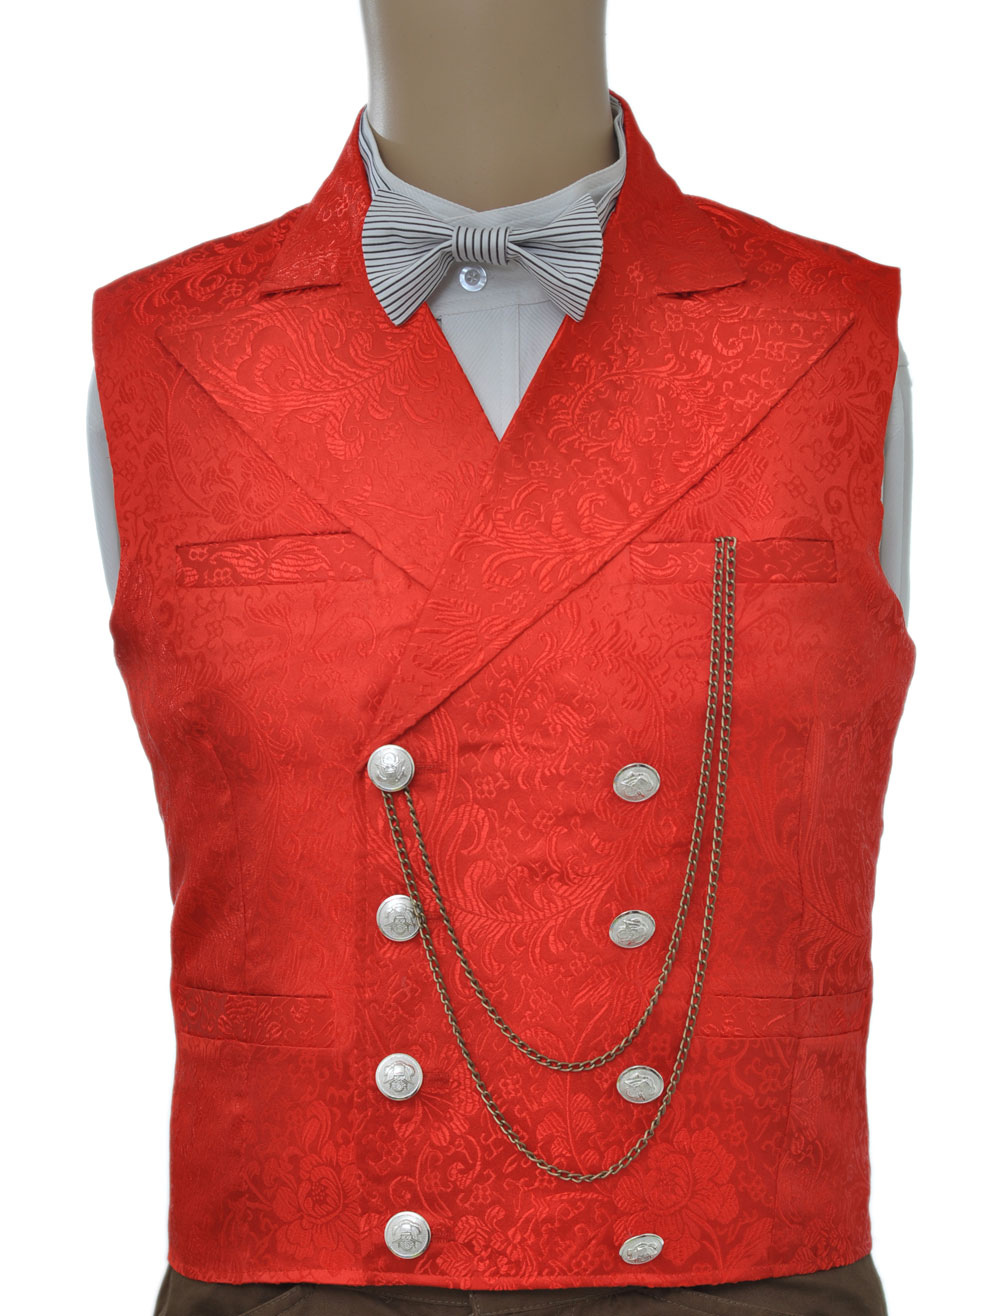 Buy Vintage Steampunk Waistcoat Red Men's Double Breasted Suit Vest Pocket Watch Chain Back Strap Jacquard Retro Costume Halloween for $57.94 in Milanoo store